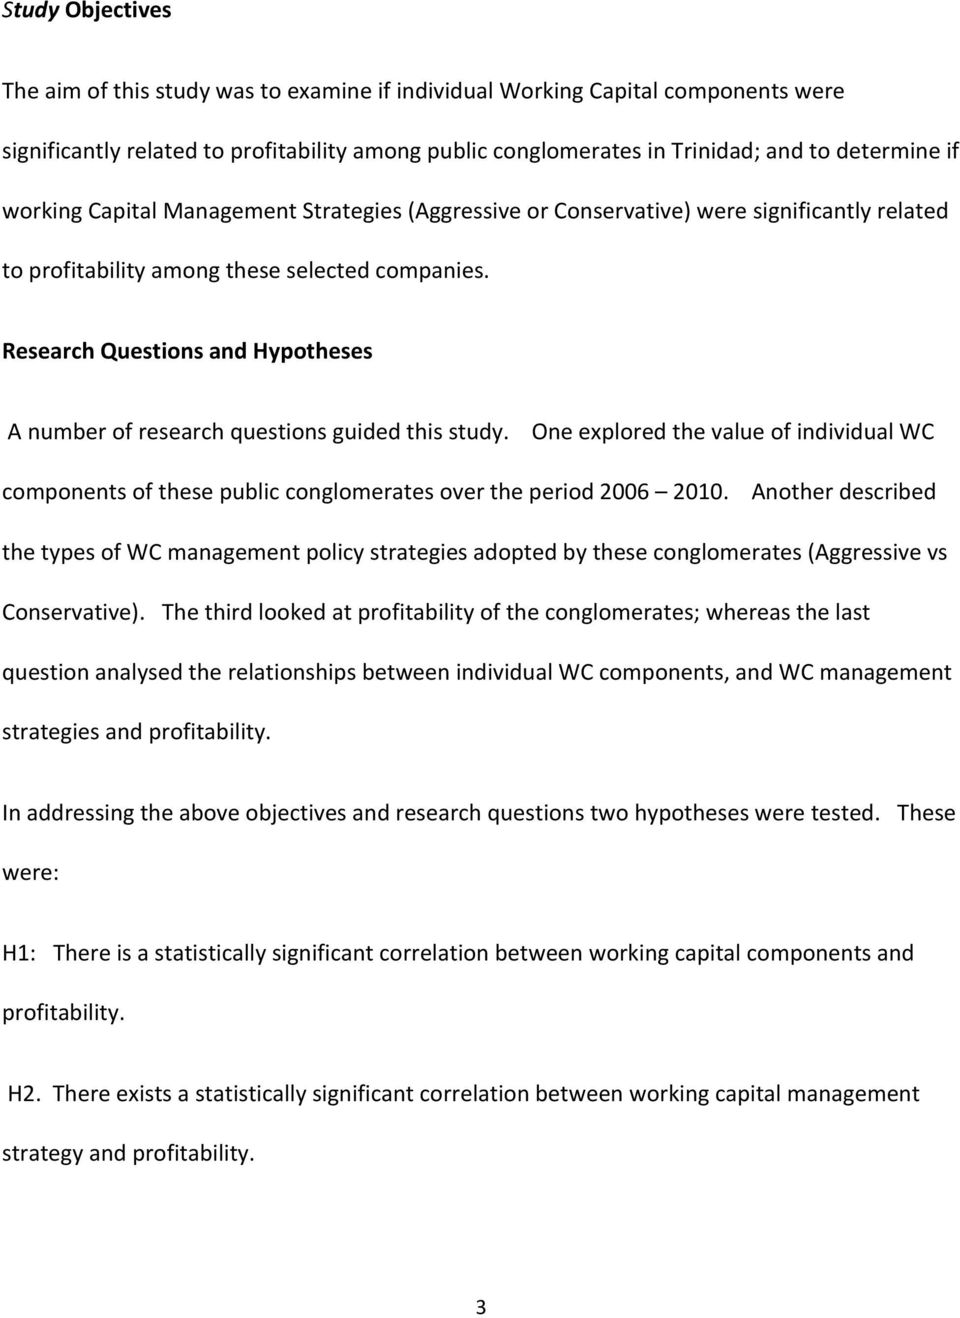 Research Questions and Hypotheses A number of research questions guided this study. One explored the value of individual WC components of these public conglomerates over the period 2006 200.